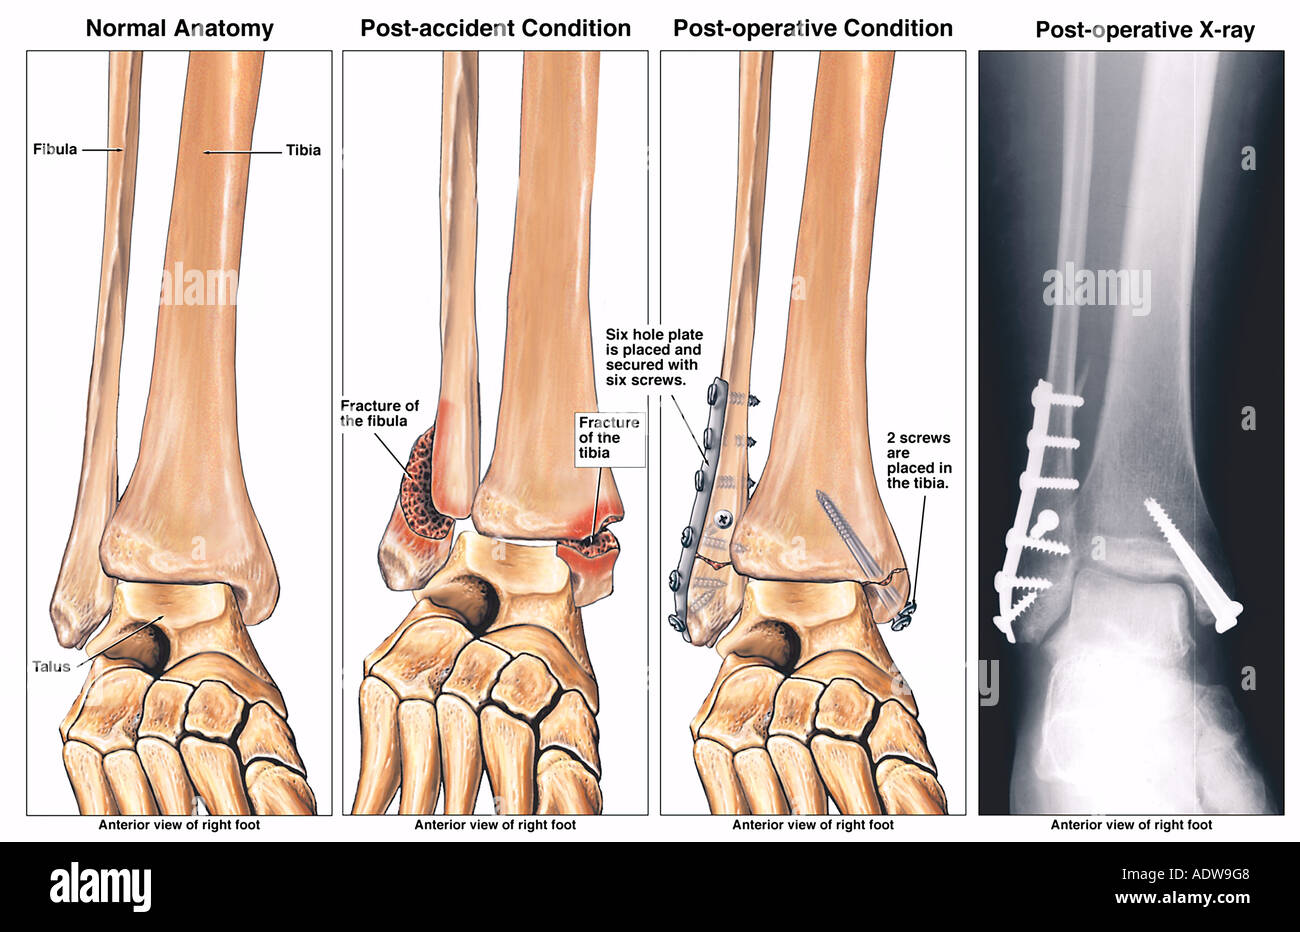 causes and treatment of bimalleolar fractures Nonoperatively treated displaced bimalleolar and trimalleolar the treatment of displaced bimalleolar fractures displaced bimalleolar and.